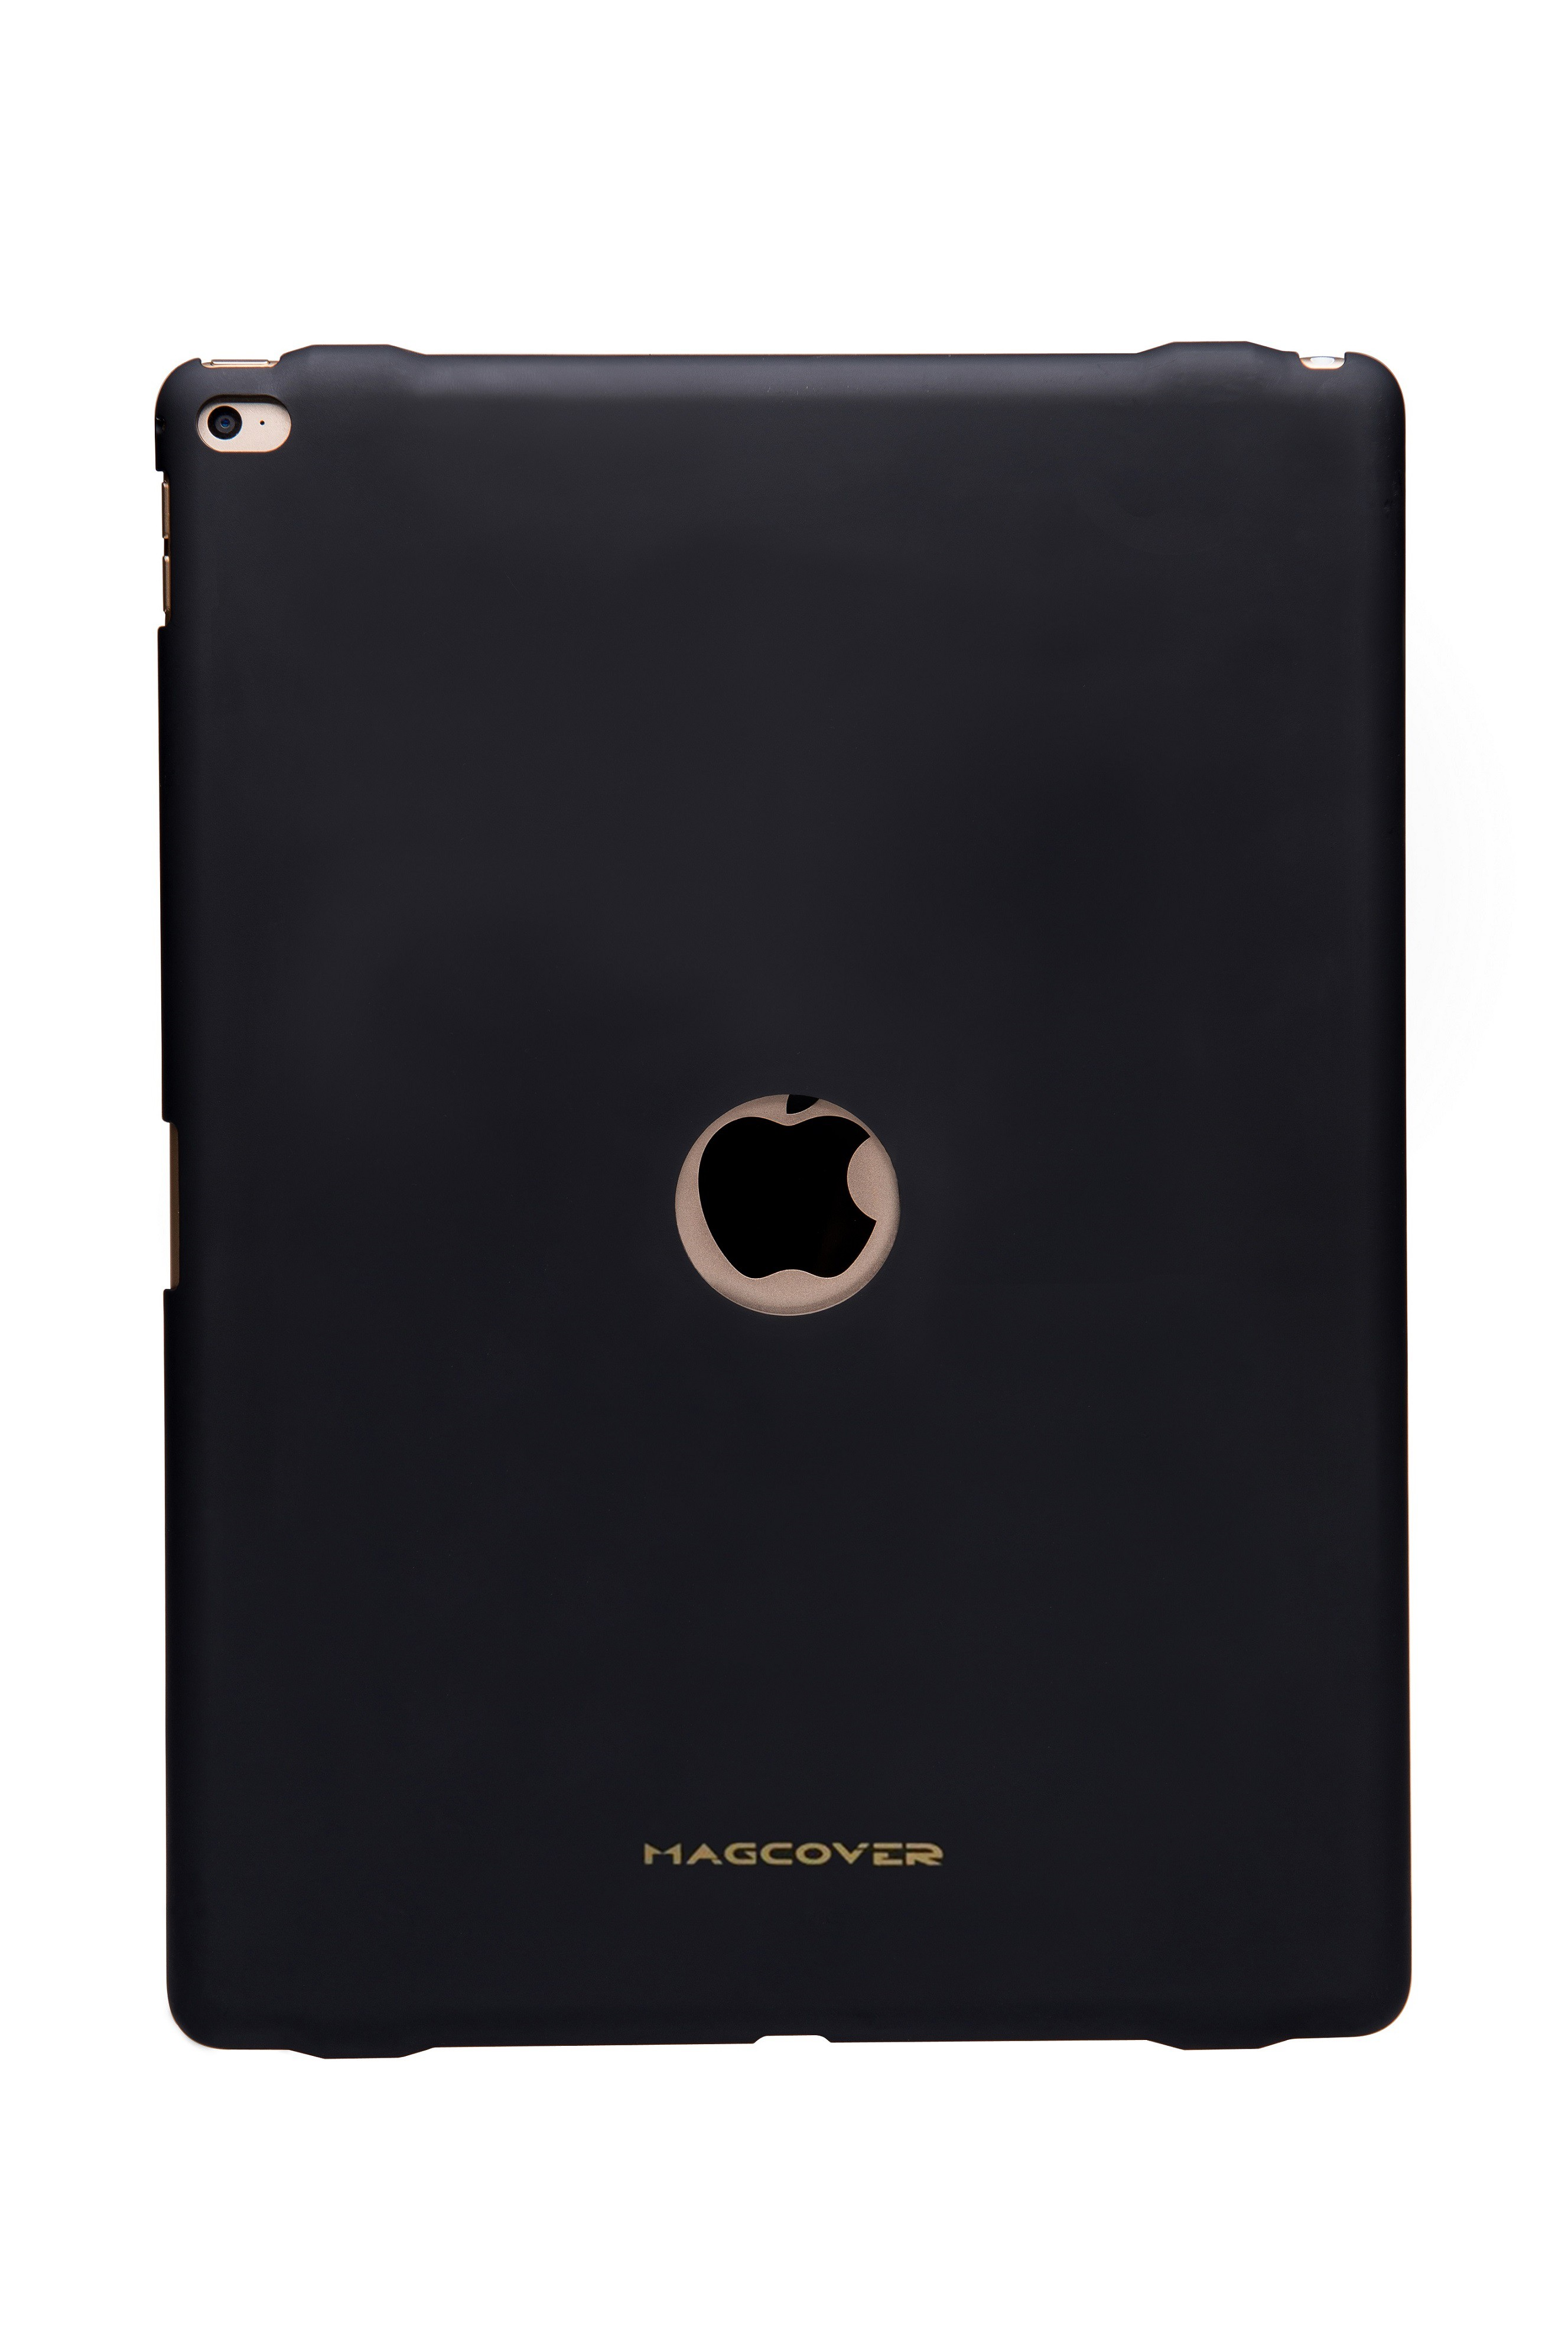 MagCover Case for iPad Pro 12,9 Black